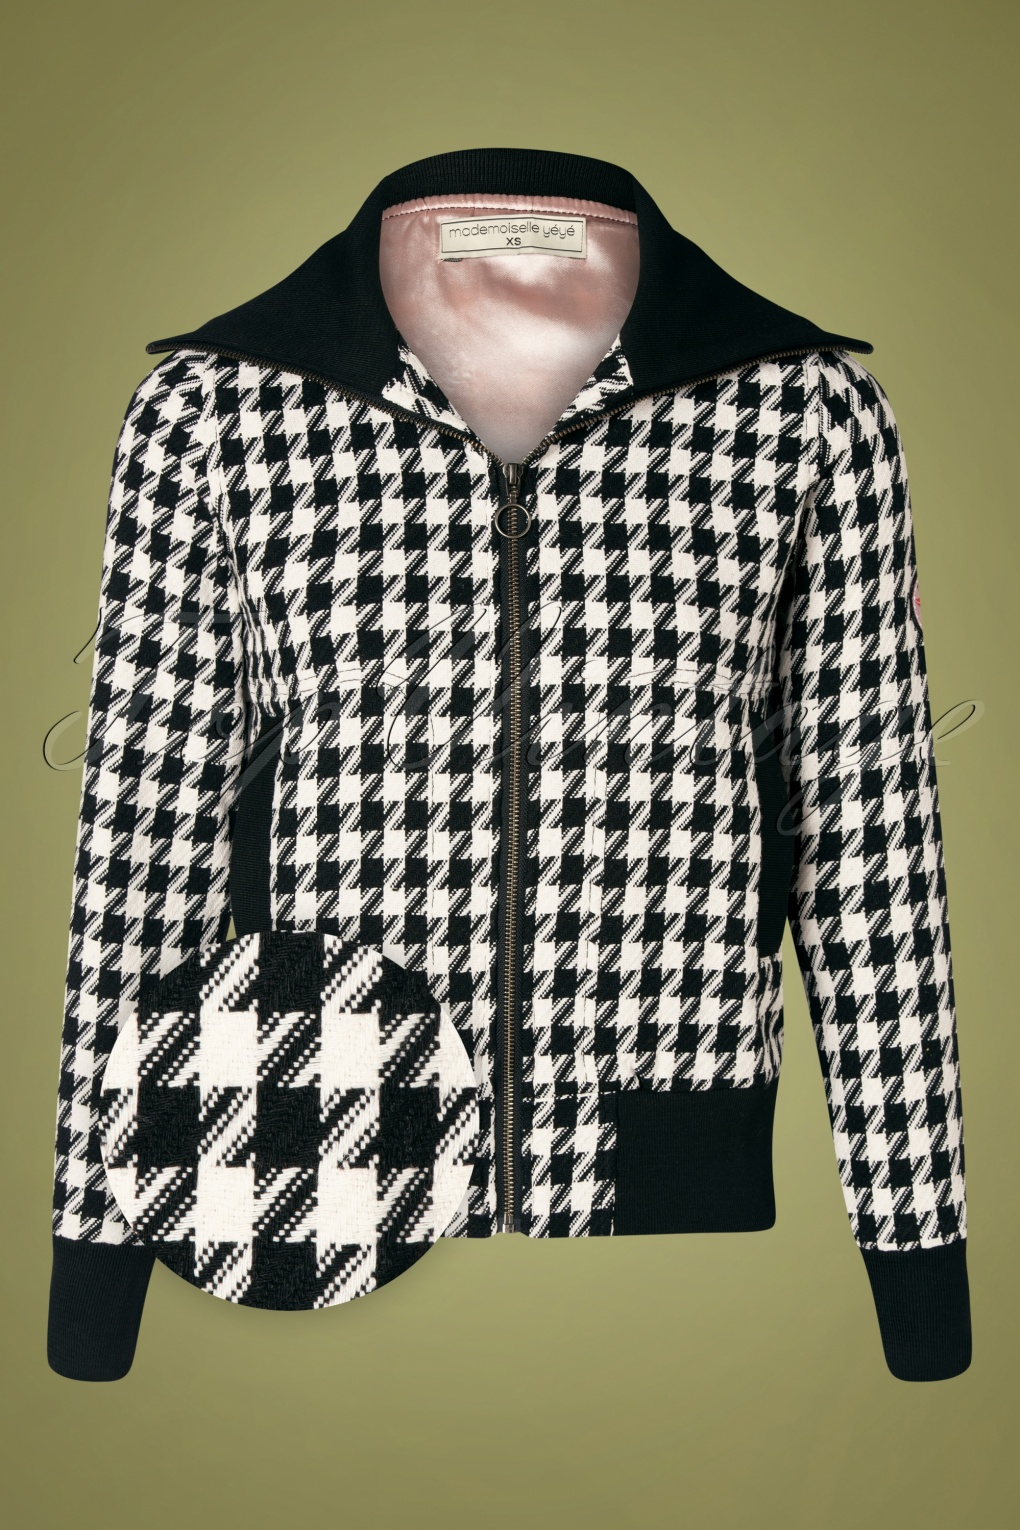 Vintage Coats & Jackets | Retro Coats and Jackets 60s Cheerful Days Jacket in Houndstooth Black and White £120.13 AT vintagedancer.com